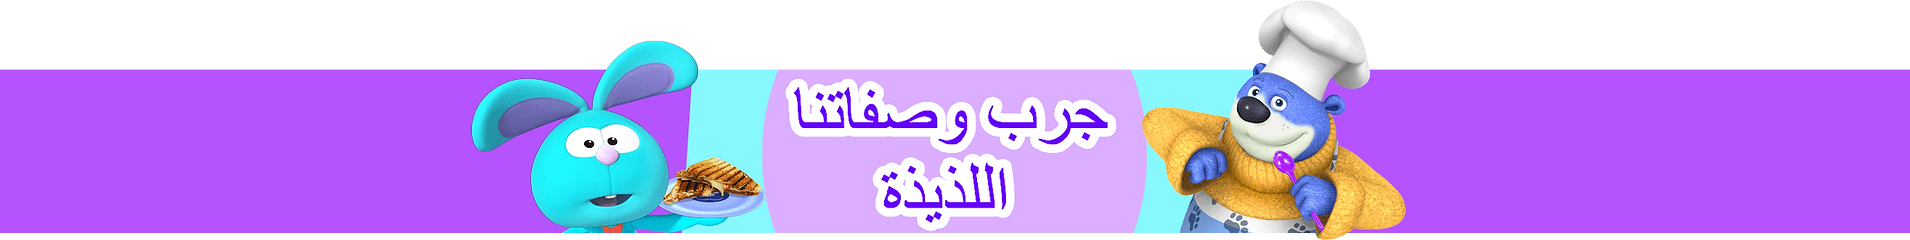 Arabic---Try-Our-Tasty-Recipes-Banner.pn